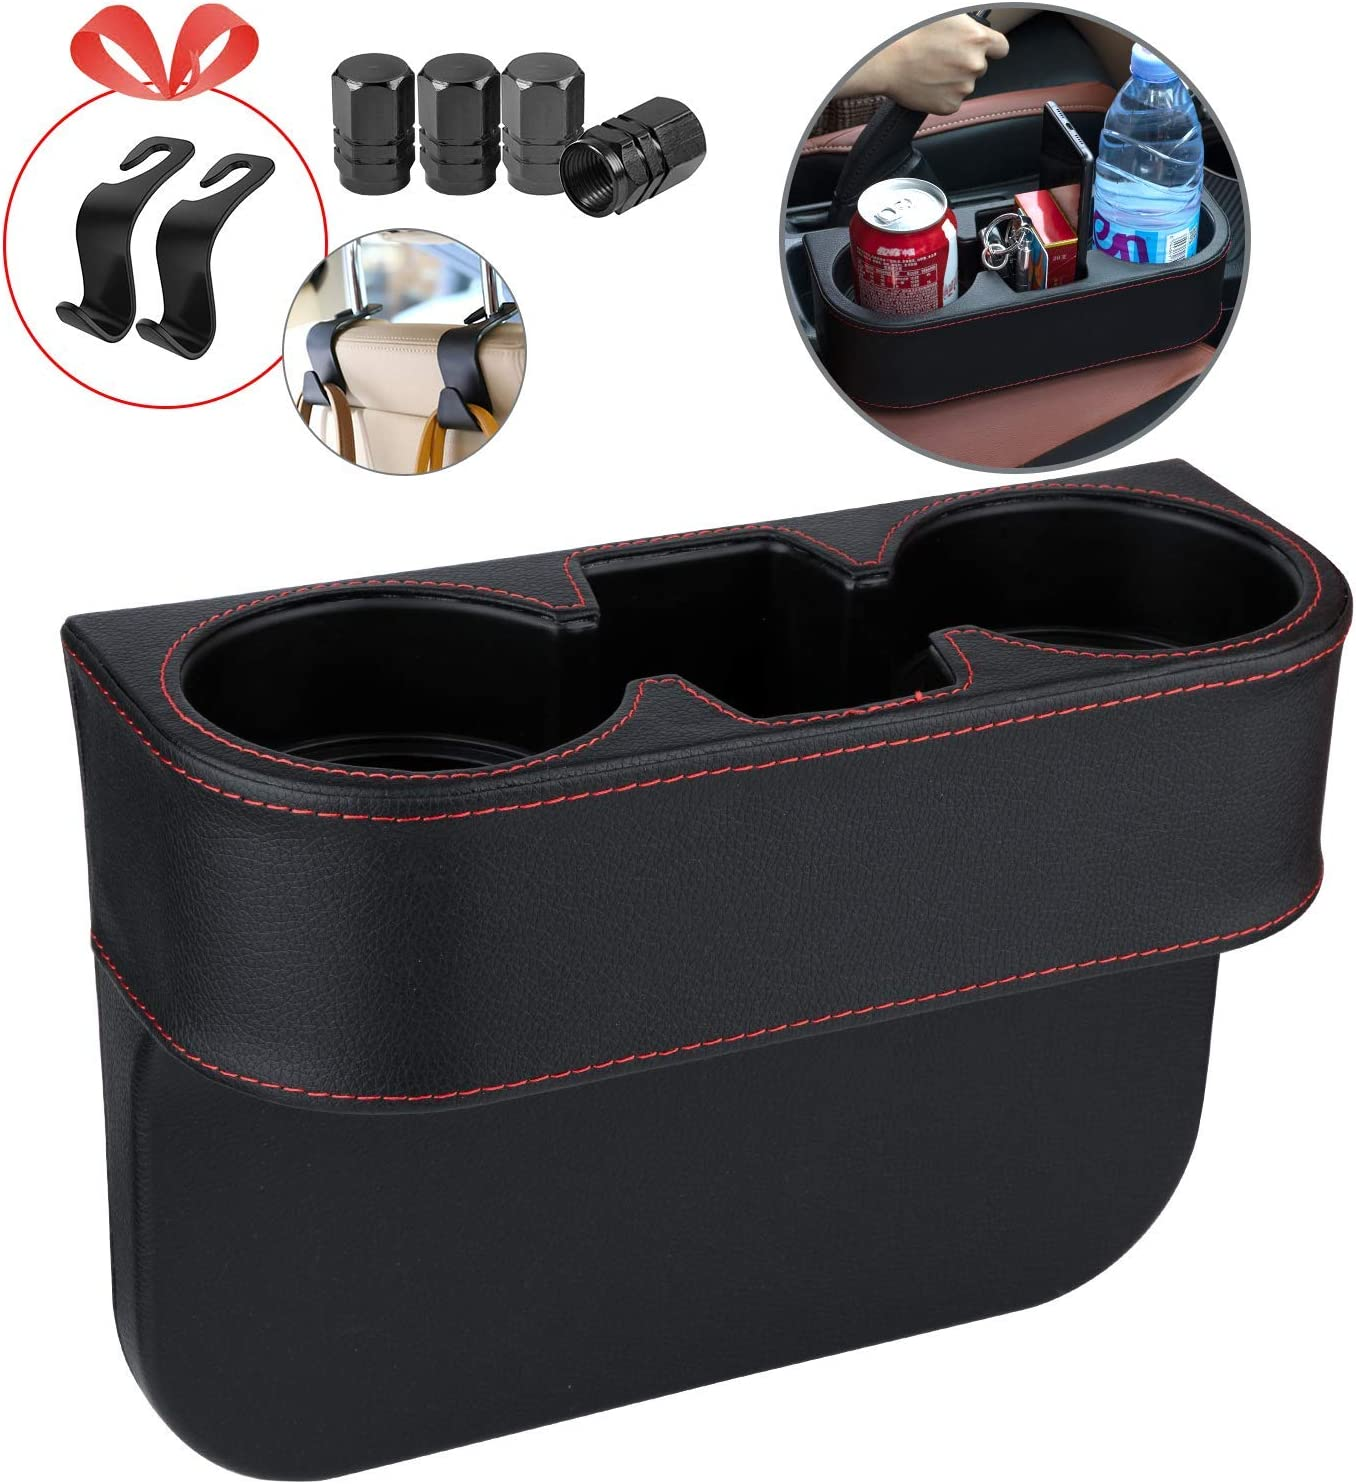 Homesprit Car Cup Holder with Phone Holder, Seat Gap Filler with Leather Cover, Side Seat Cup Holder for Storing and Organizing Car Drinking Cup Pocket Etc (No-Frame)